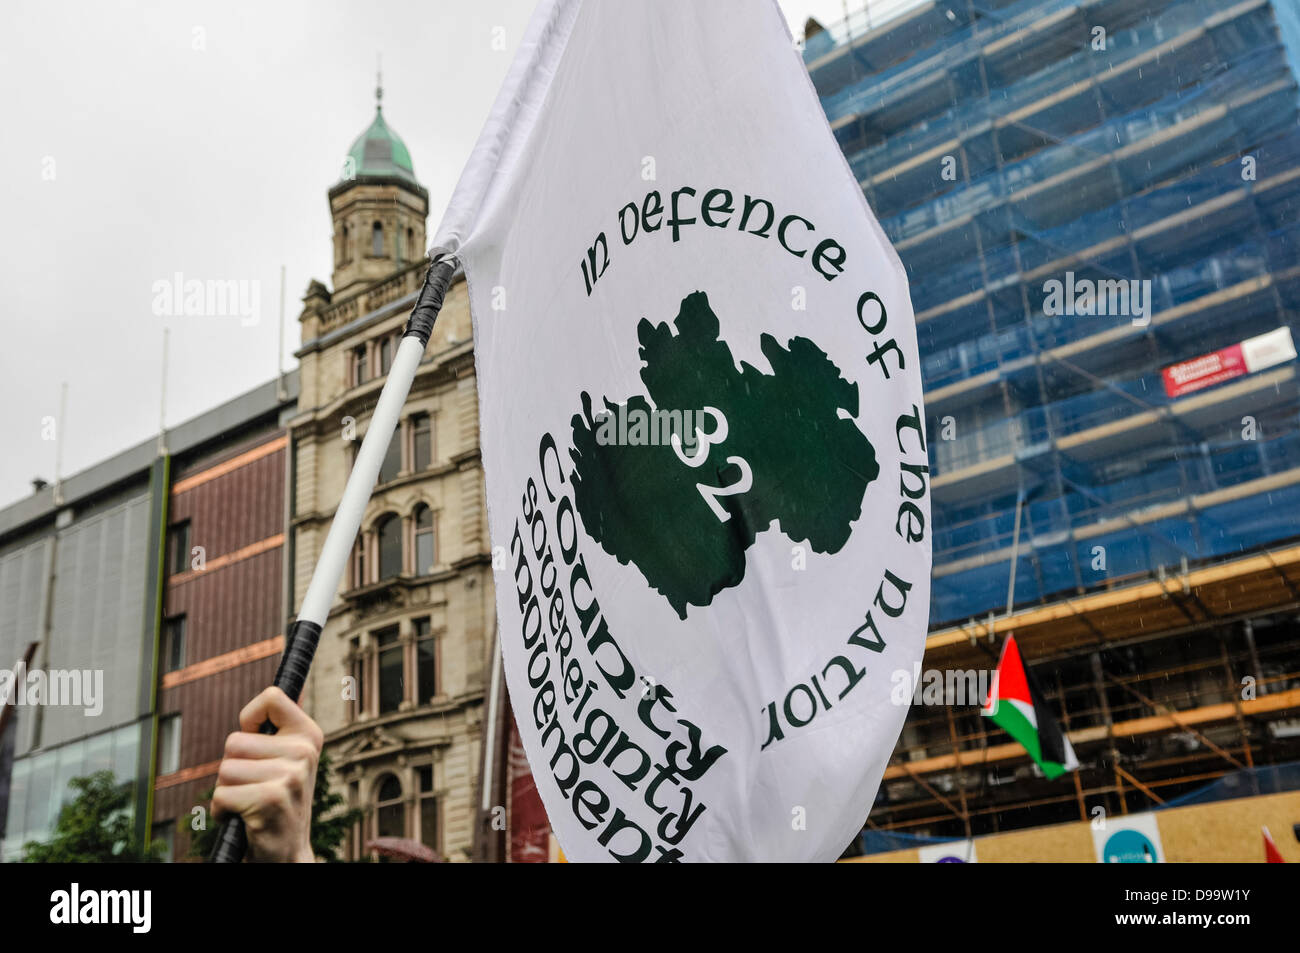 Belfast, Northern Ireland. 15th June 2013. The Irish Republican movement, the 32 County Sovereignty Committee hold - Stock Image